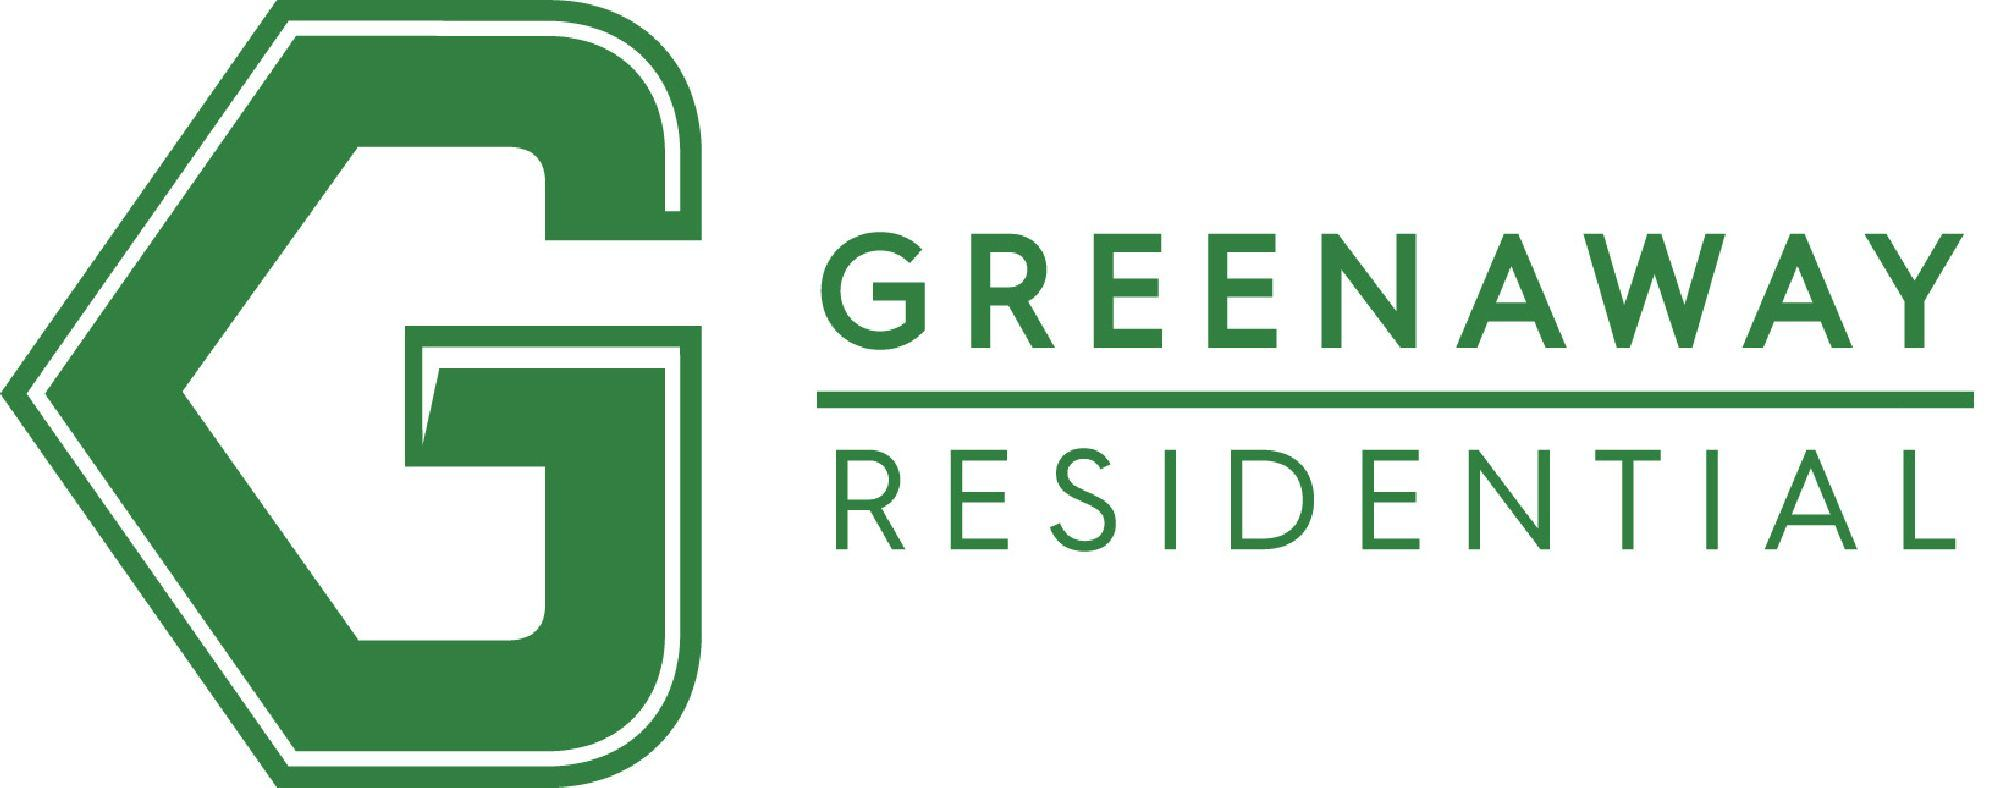 Greenaway Residential Estate Agents Logo